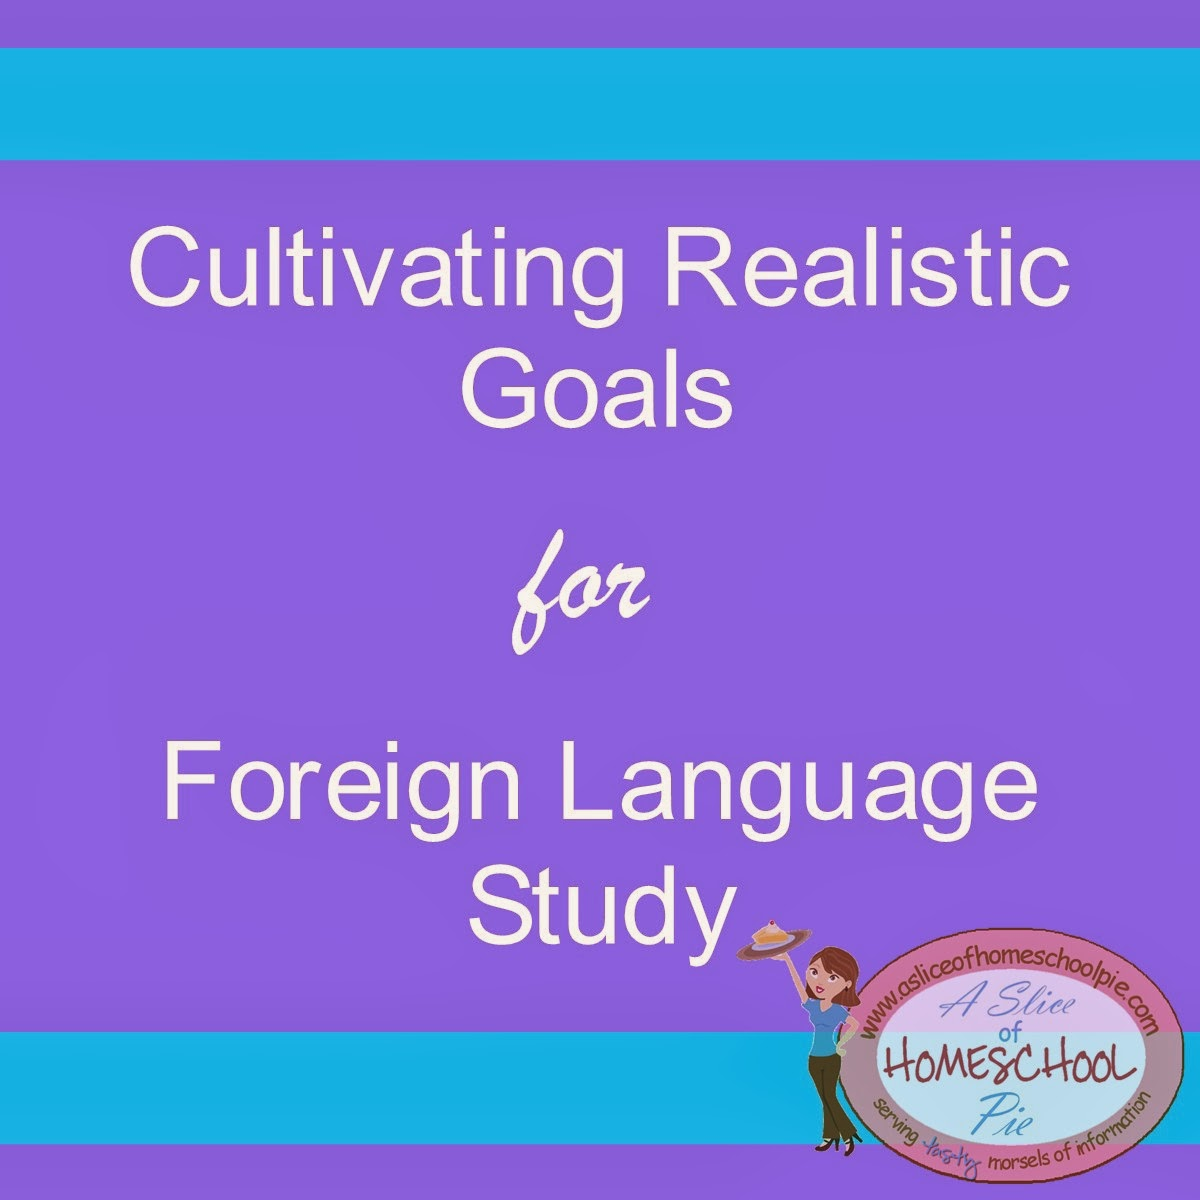 Cultivating Realistic Goals for Foreign Language Study by William E. Linney for A Slice of Homeschool Pie.com #homeschool